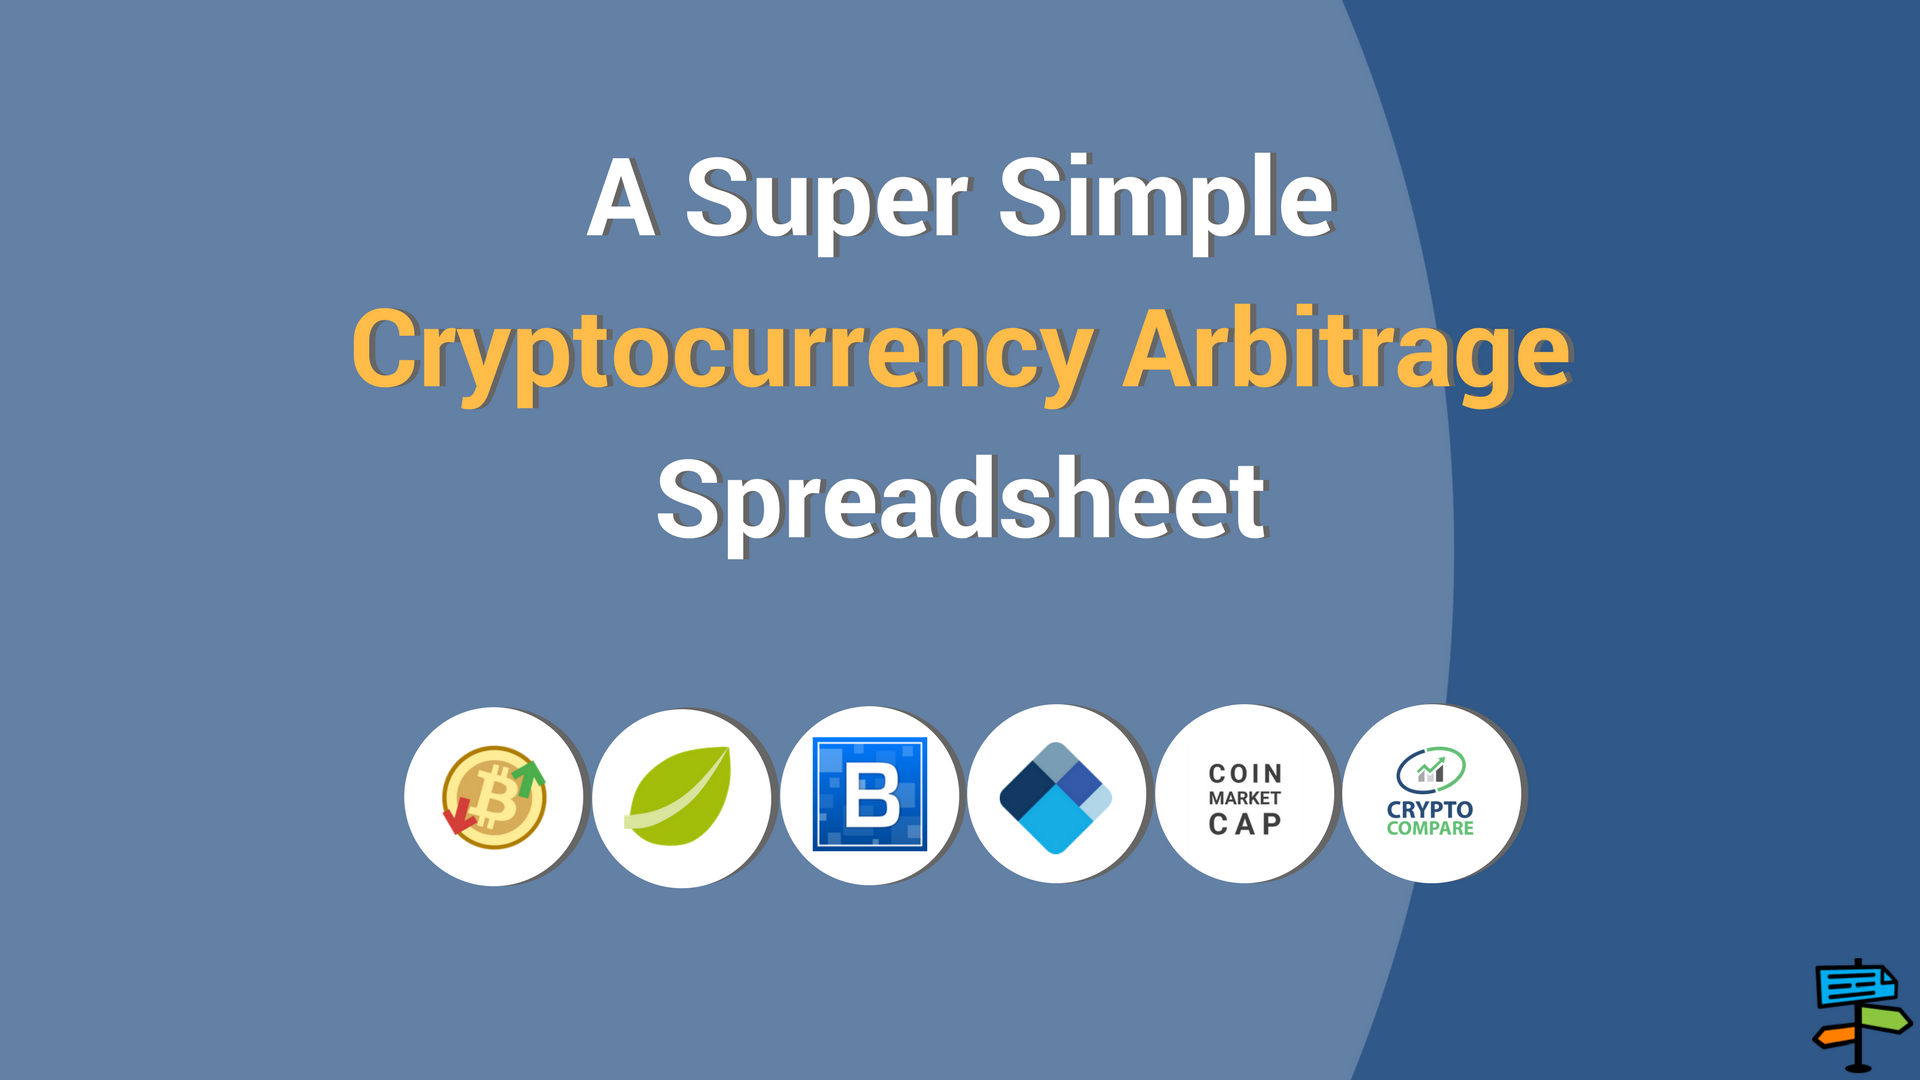 A Super Simple Cryptocurrency Arbitrage Spreadsheet for Finding